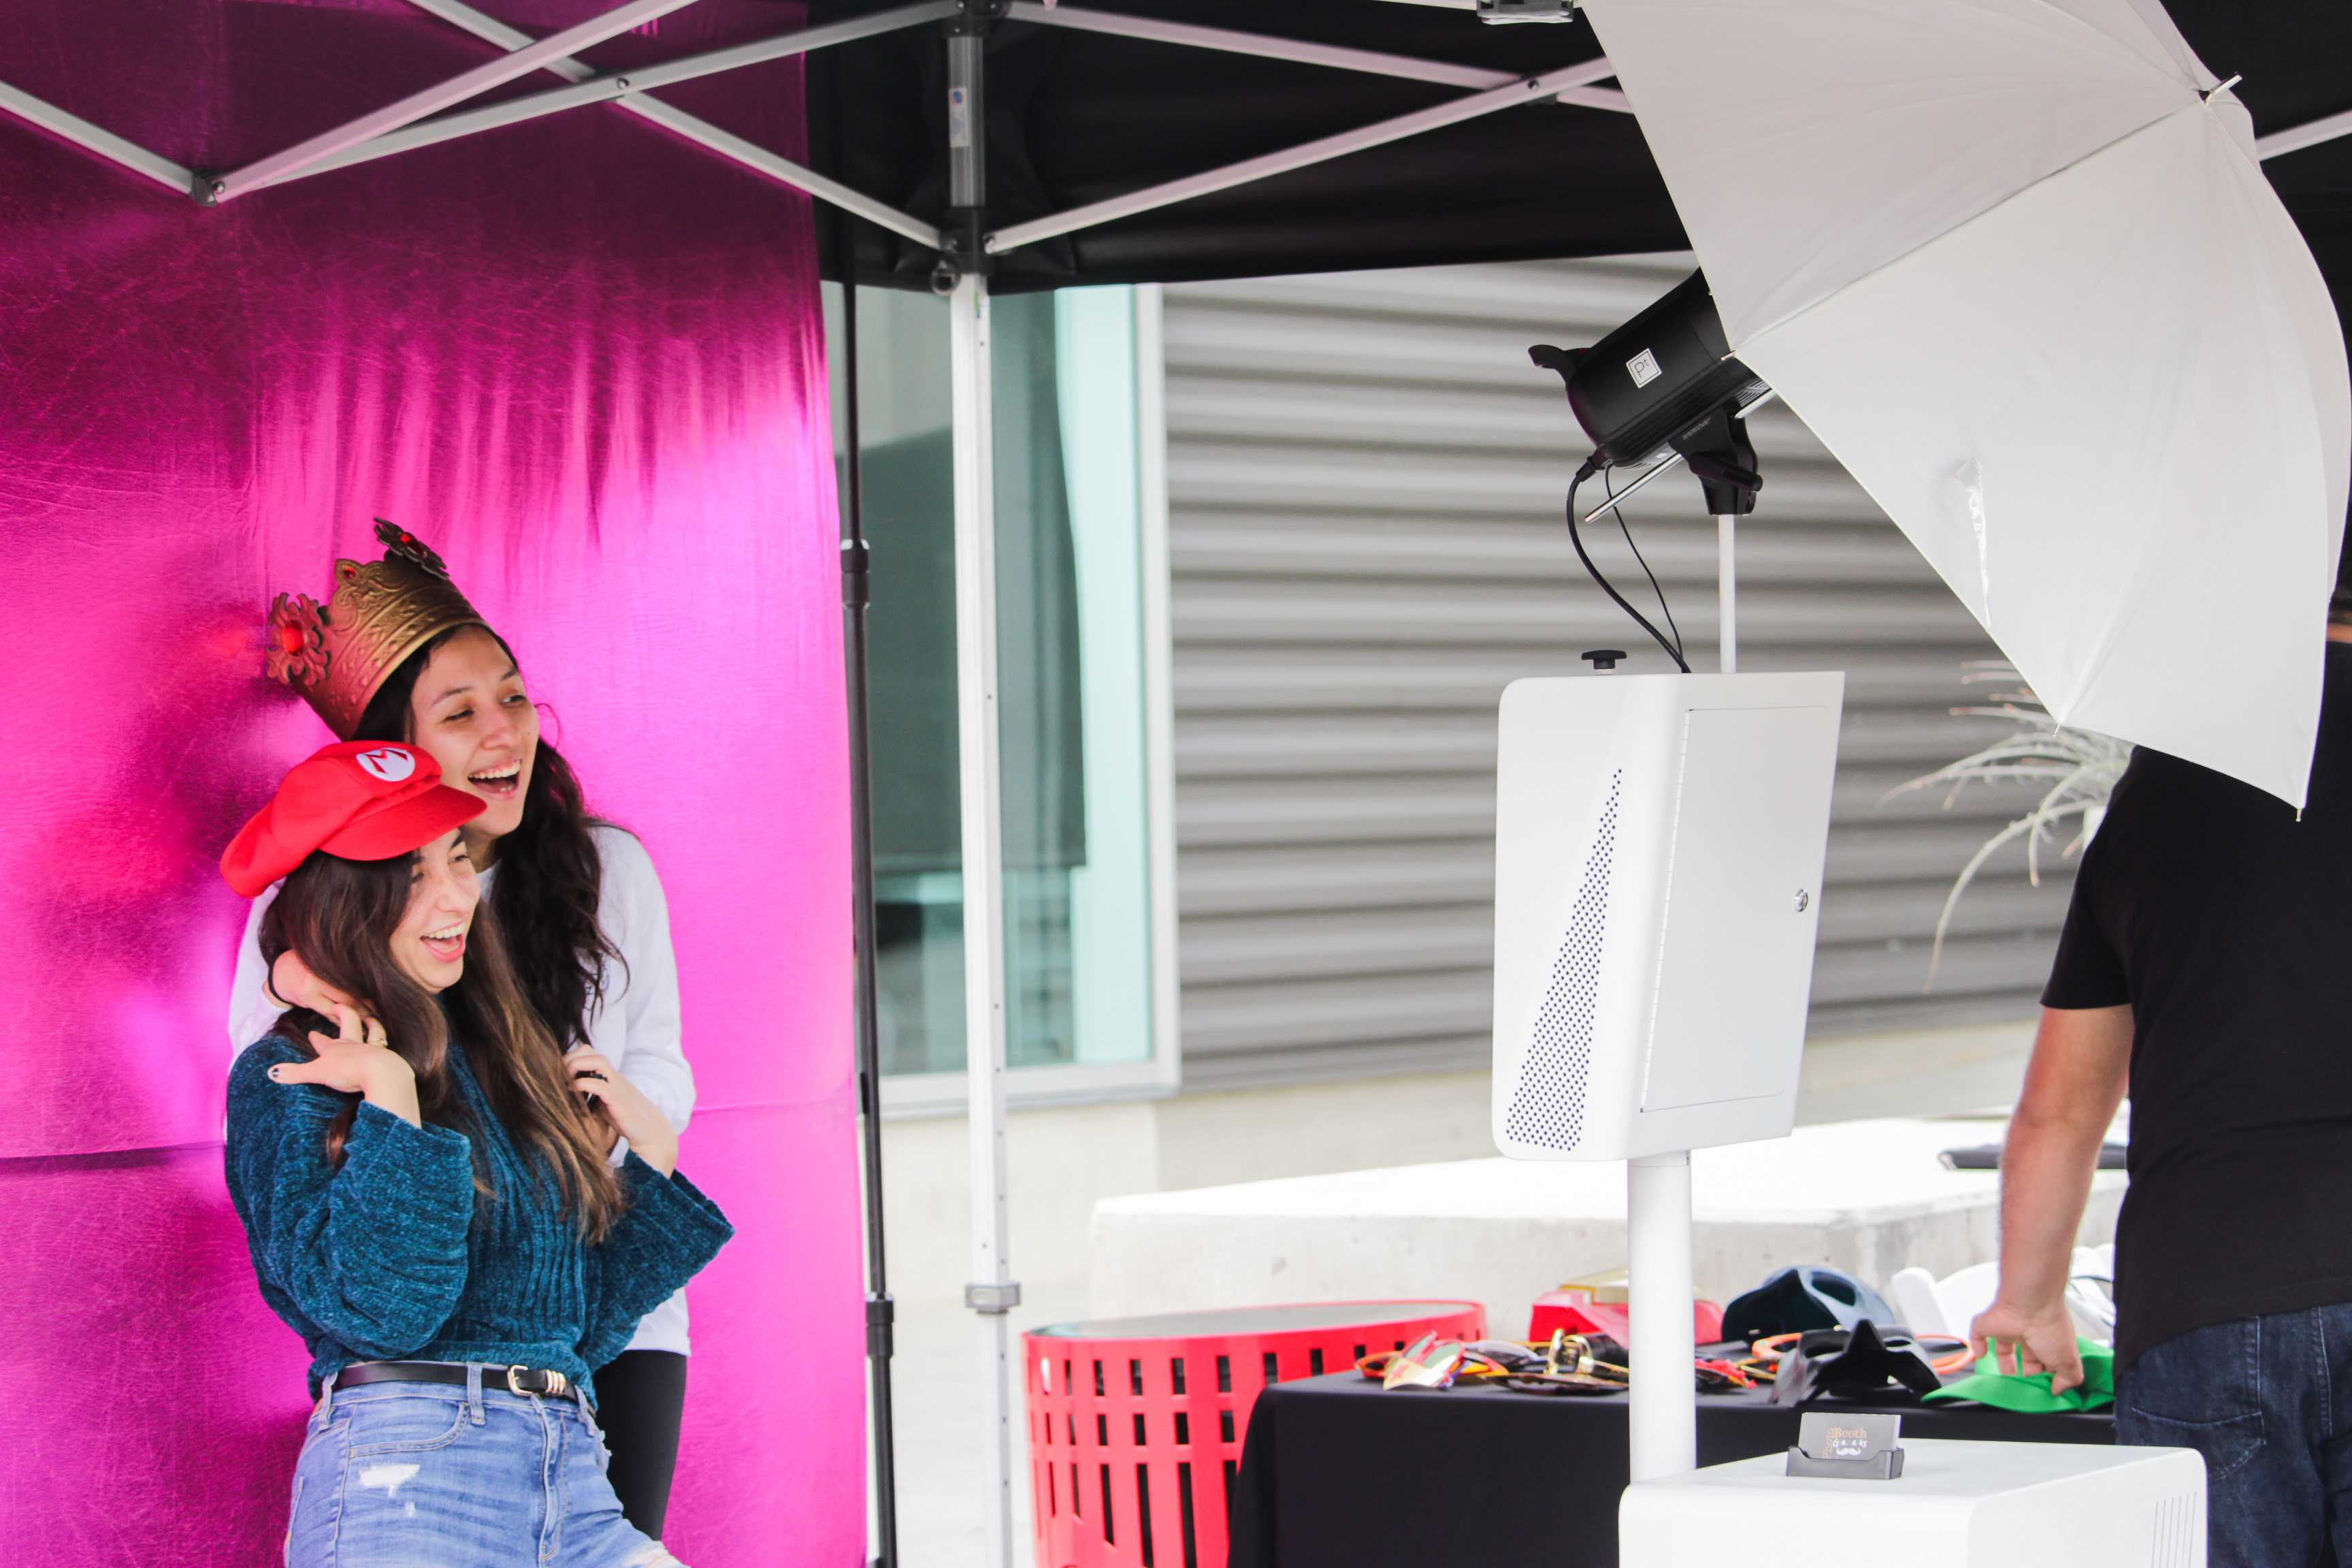 Seniors Marlena Klein and Jocelyn Lazo take pictures at the photo booth during the